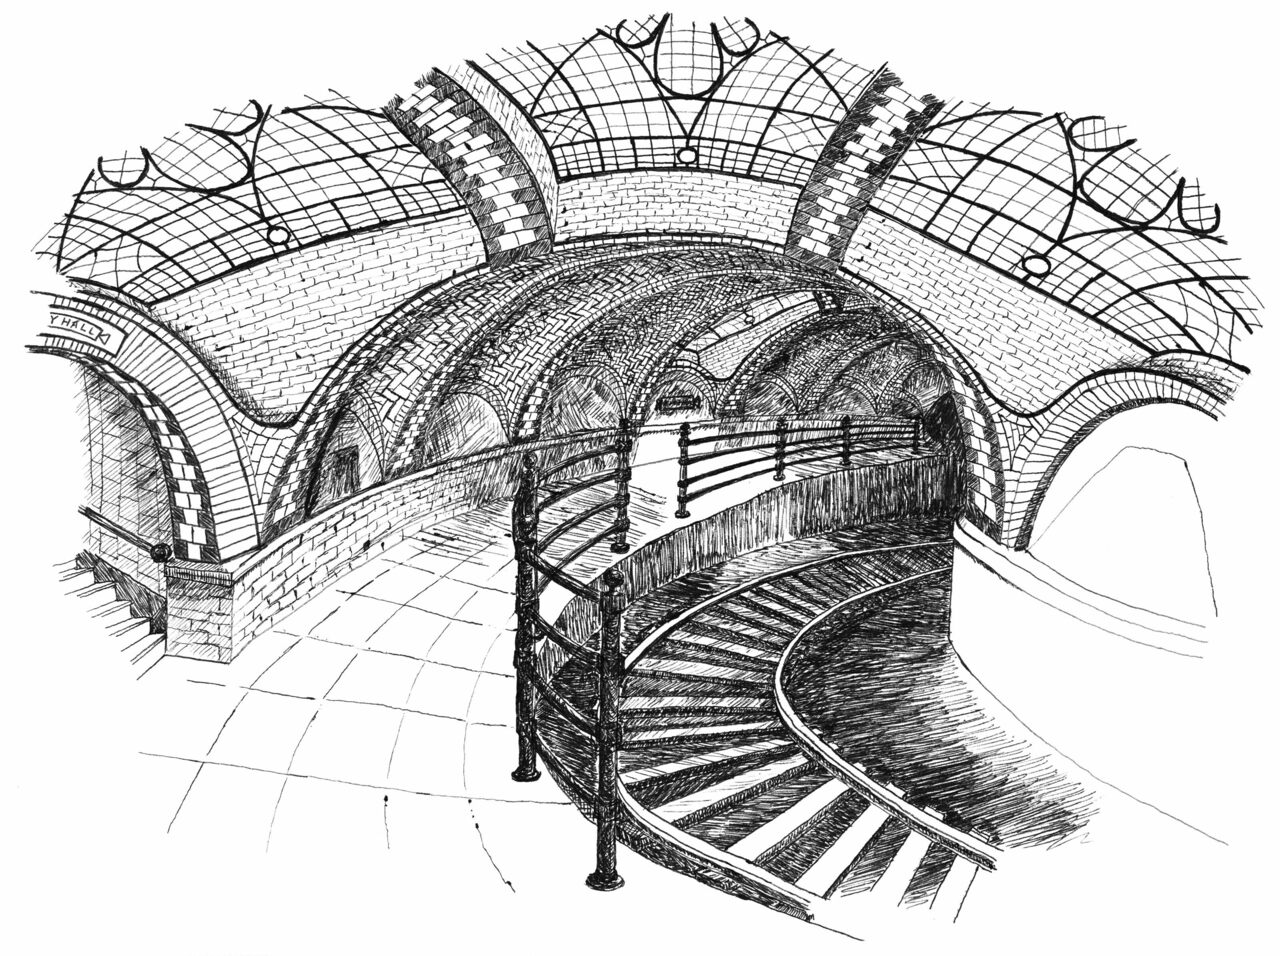 The old City Hall station has narrow, curving tracks.